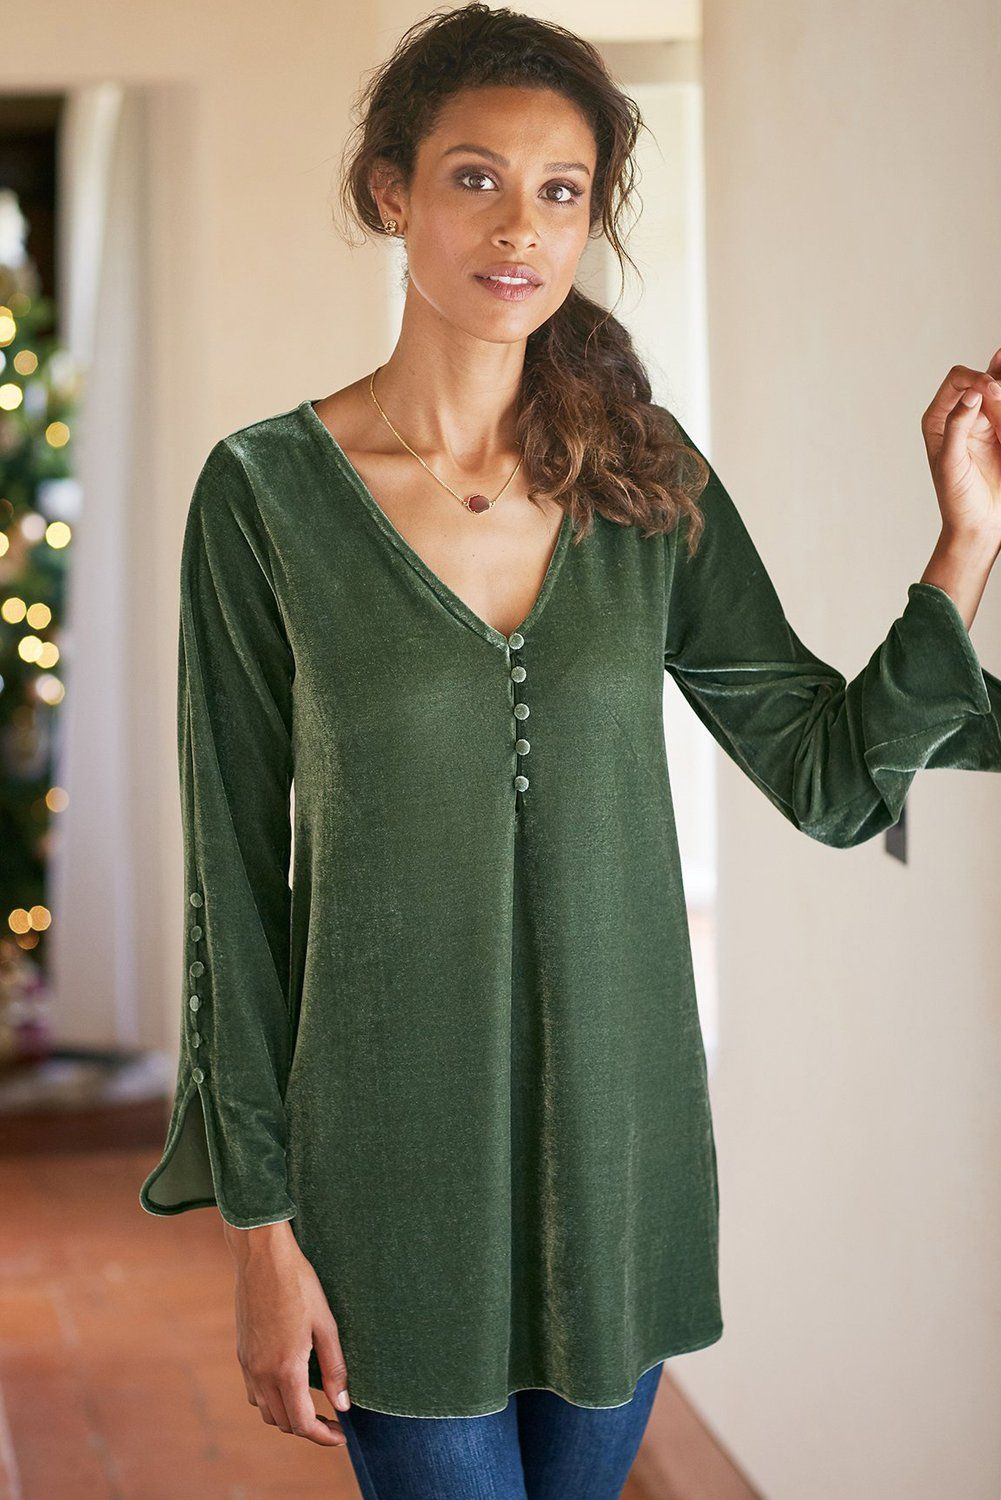 Green La Vie Velvet Top - KaleaBoutique.com